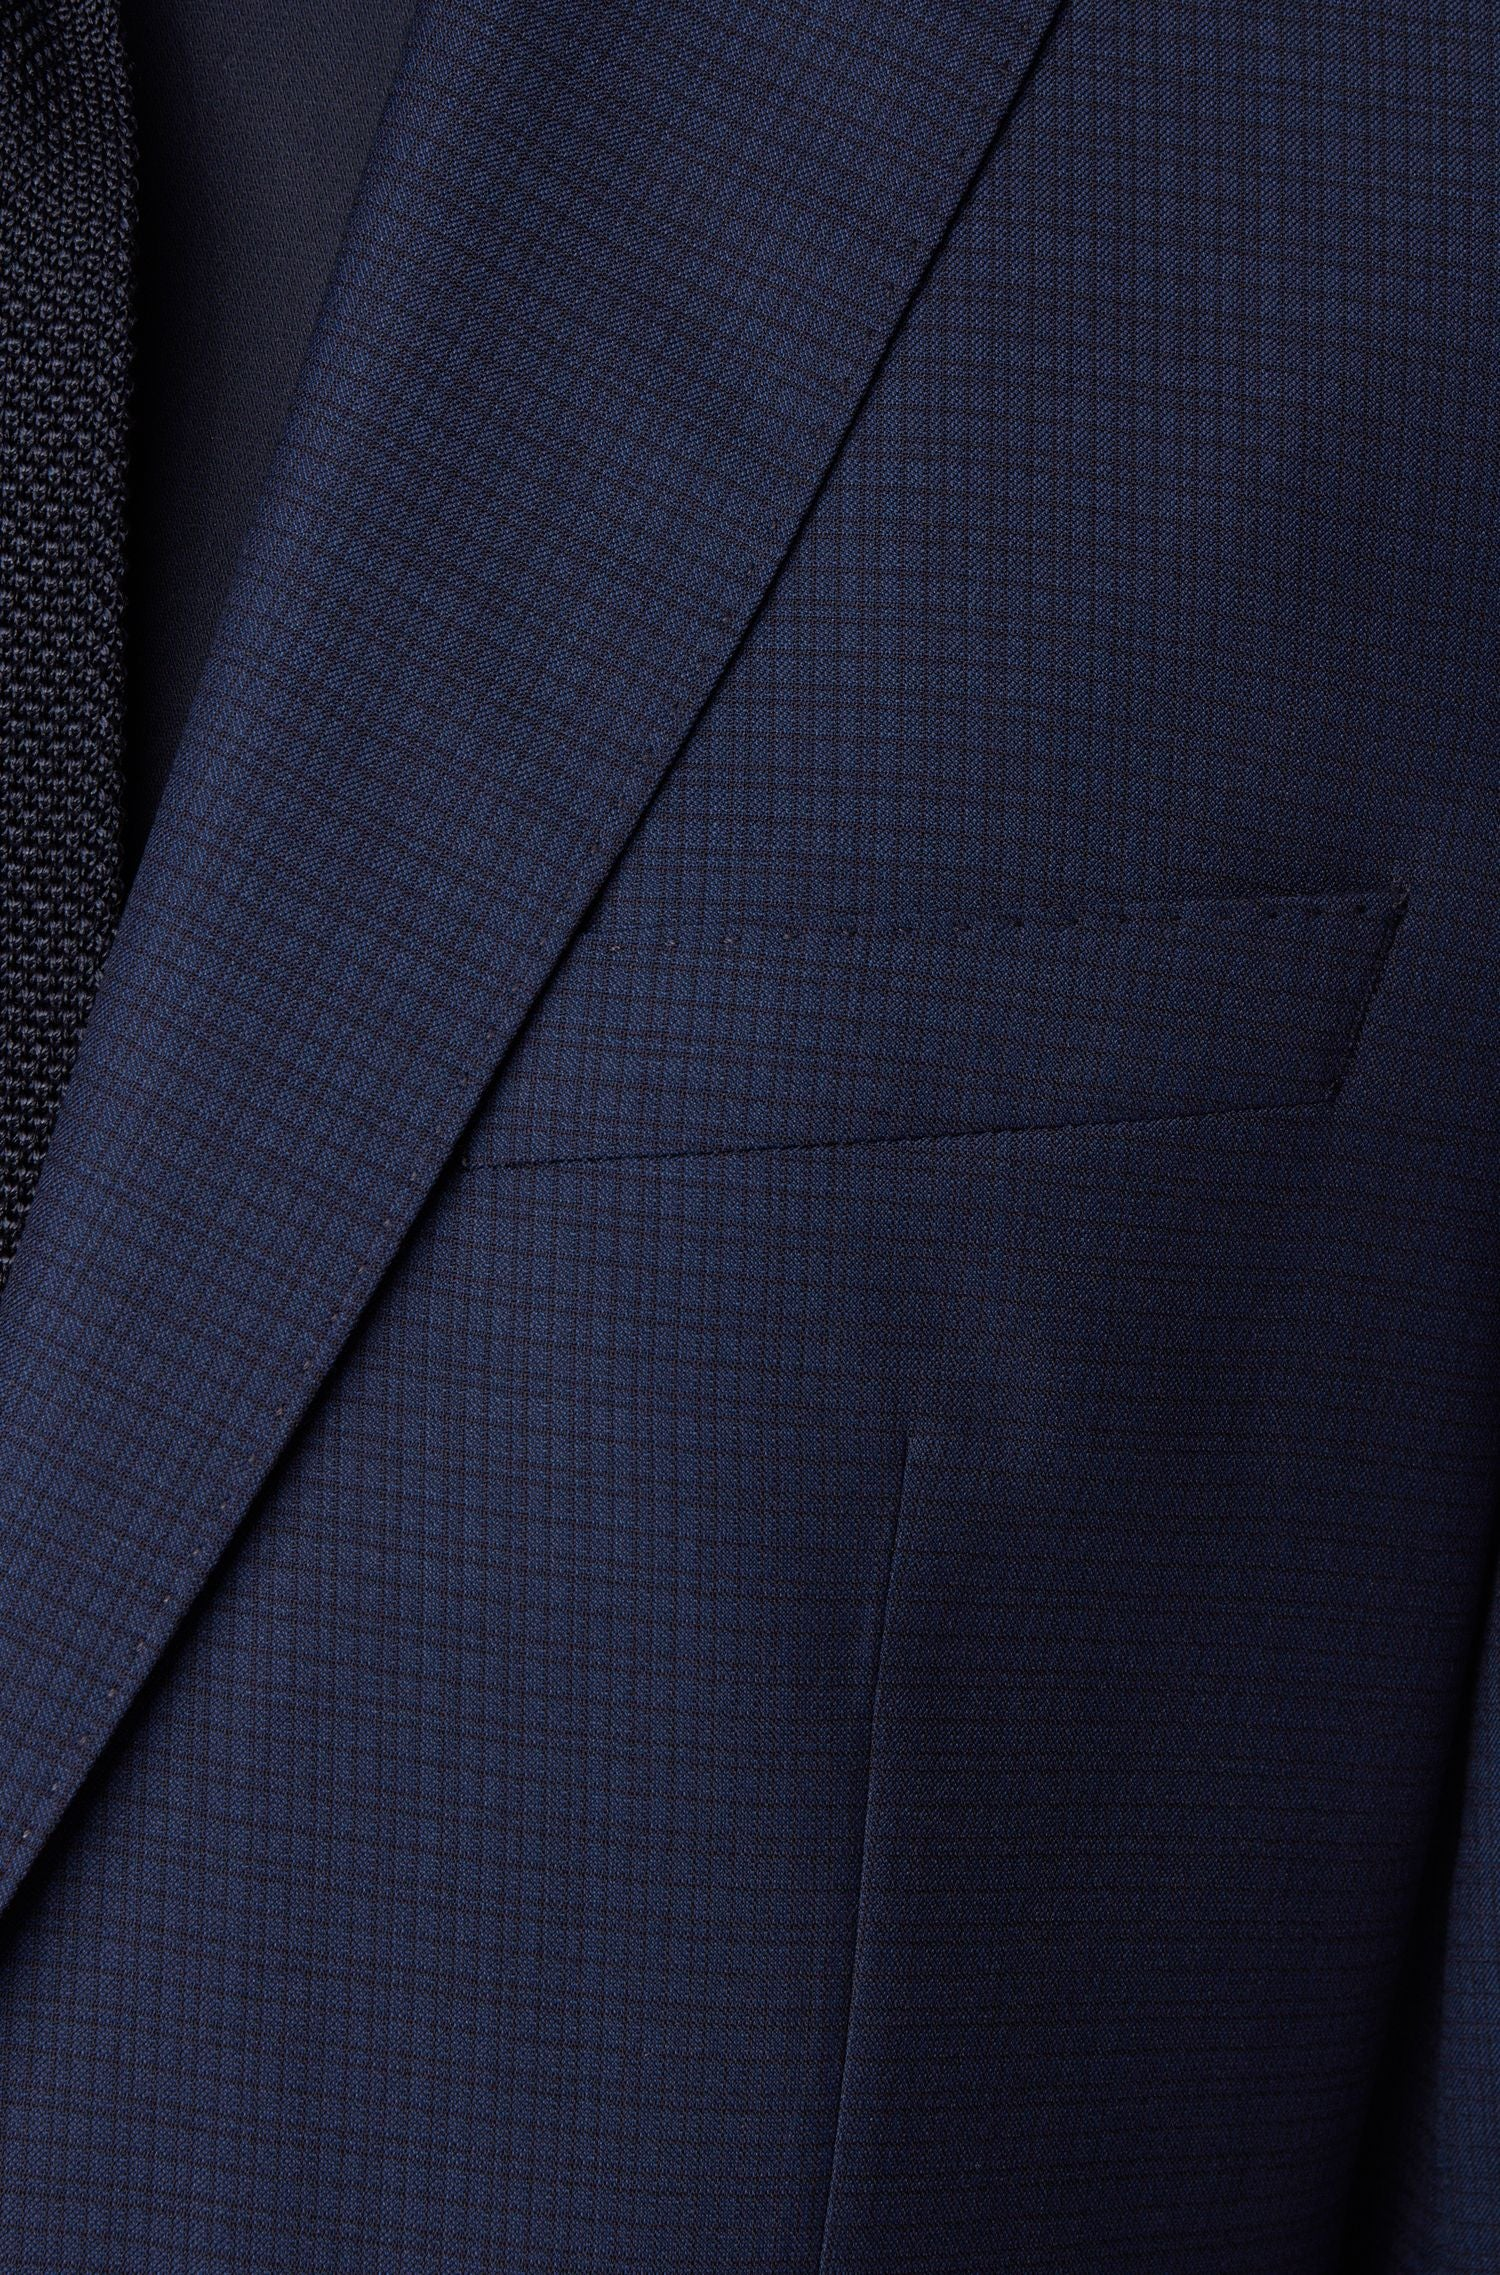 Hugo Boss - Dark Blue Micro Check Wool and Silk Blend Suit 50427248